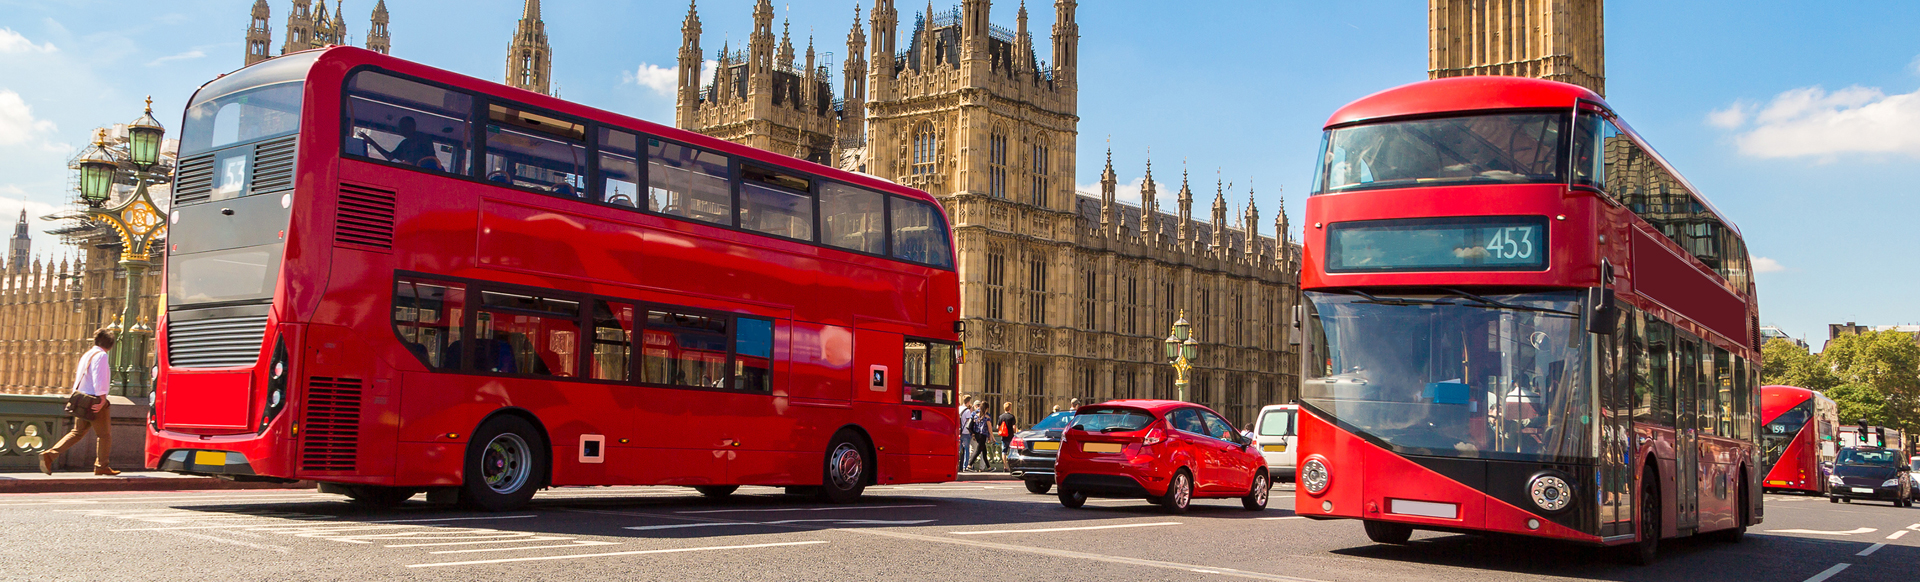 Two red doubledecker buses driving on the main street in front of the Houses of Parliament on a sunny day.